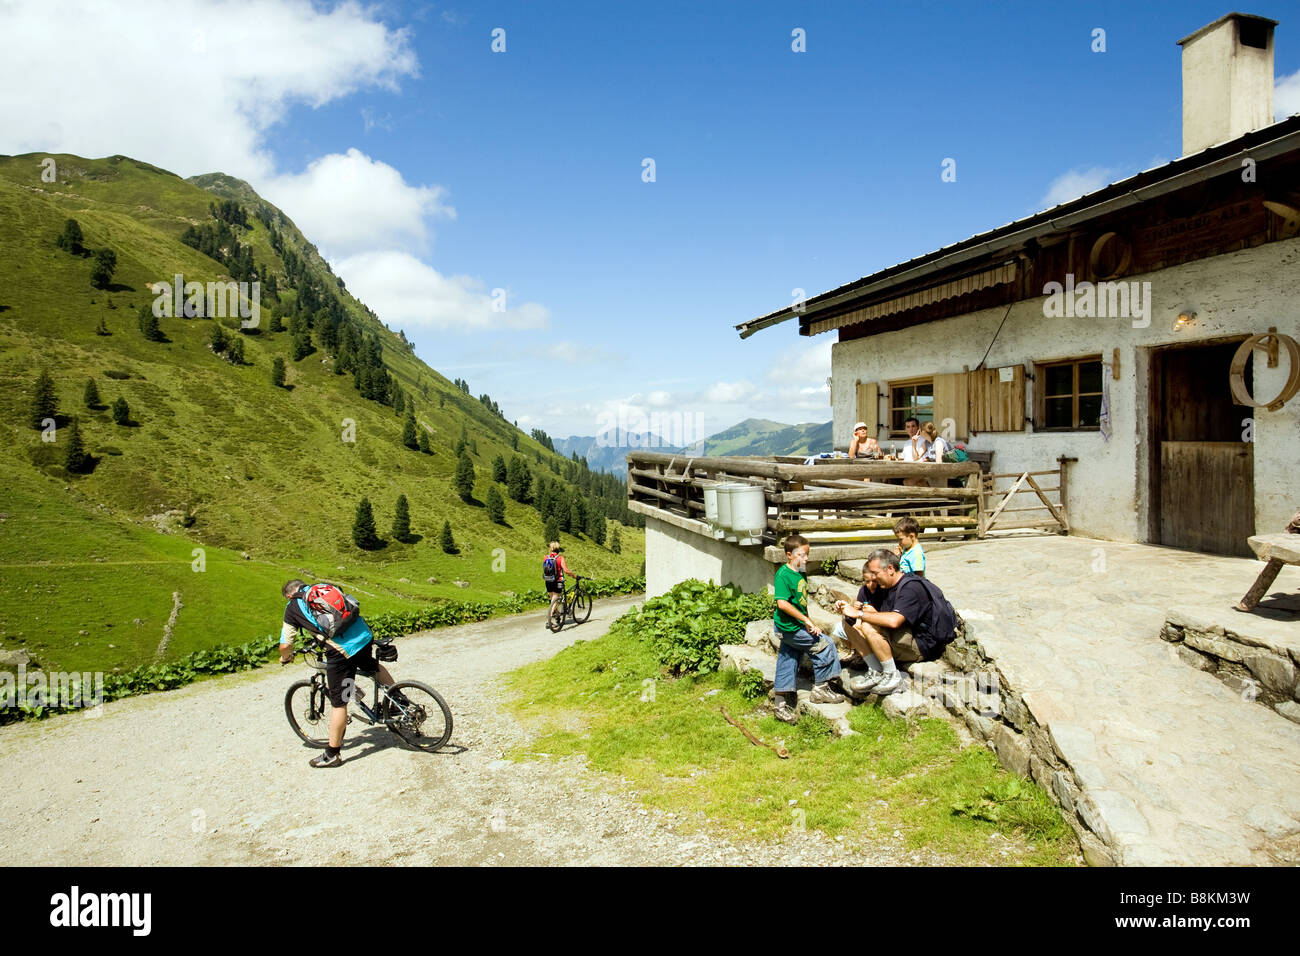 The alp Steinbergalm on 1712m in the near from the mountain Grosser Galtenberg - Stock Image